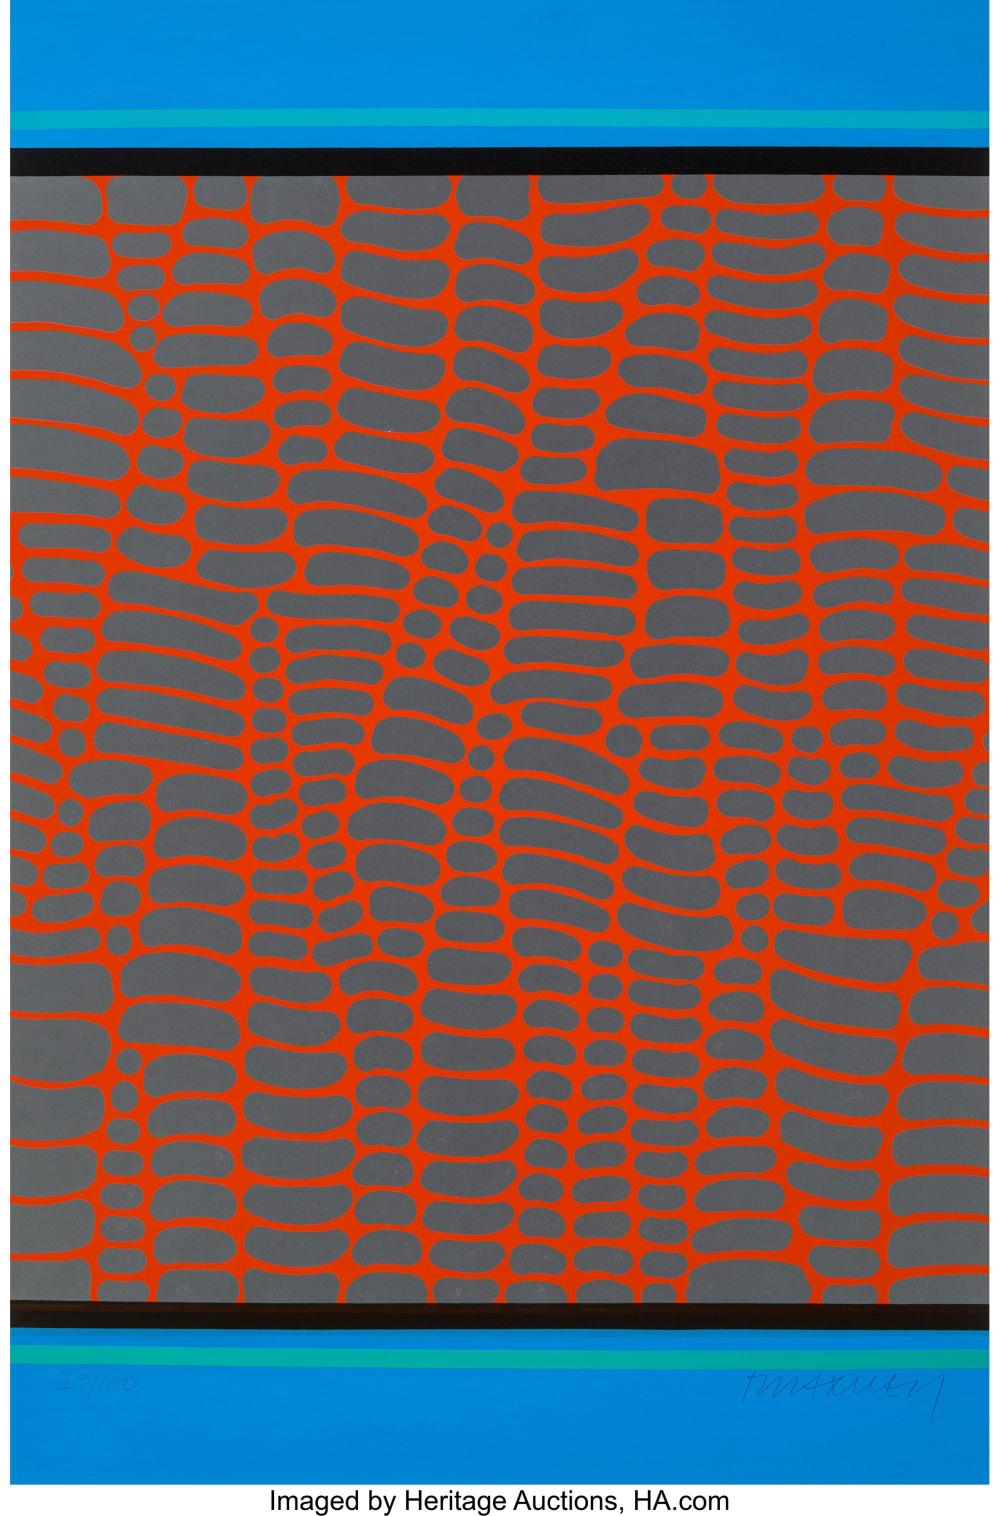 Lot 21321: Paul Maxwell (b.1925) Untitled - Red and Blue Web, 1978 Serigraph in colors on w